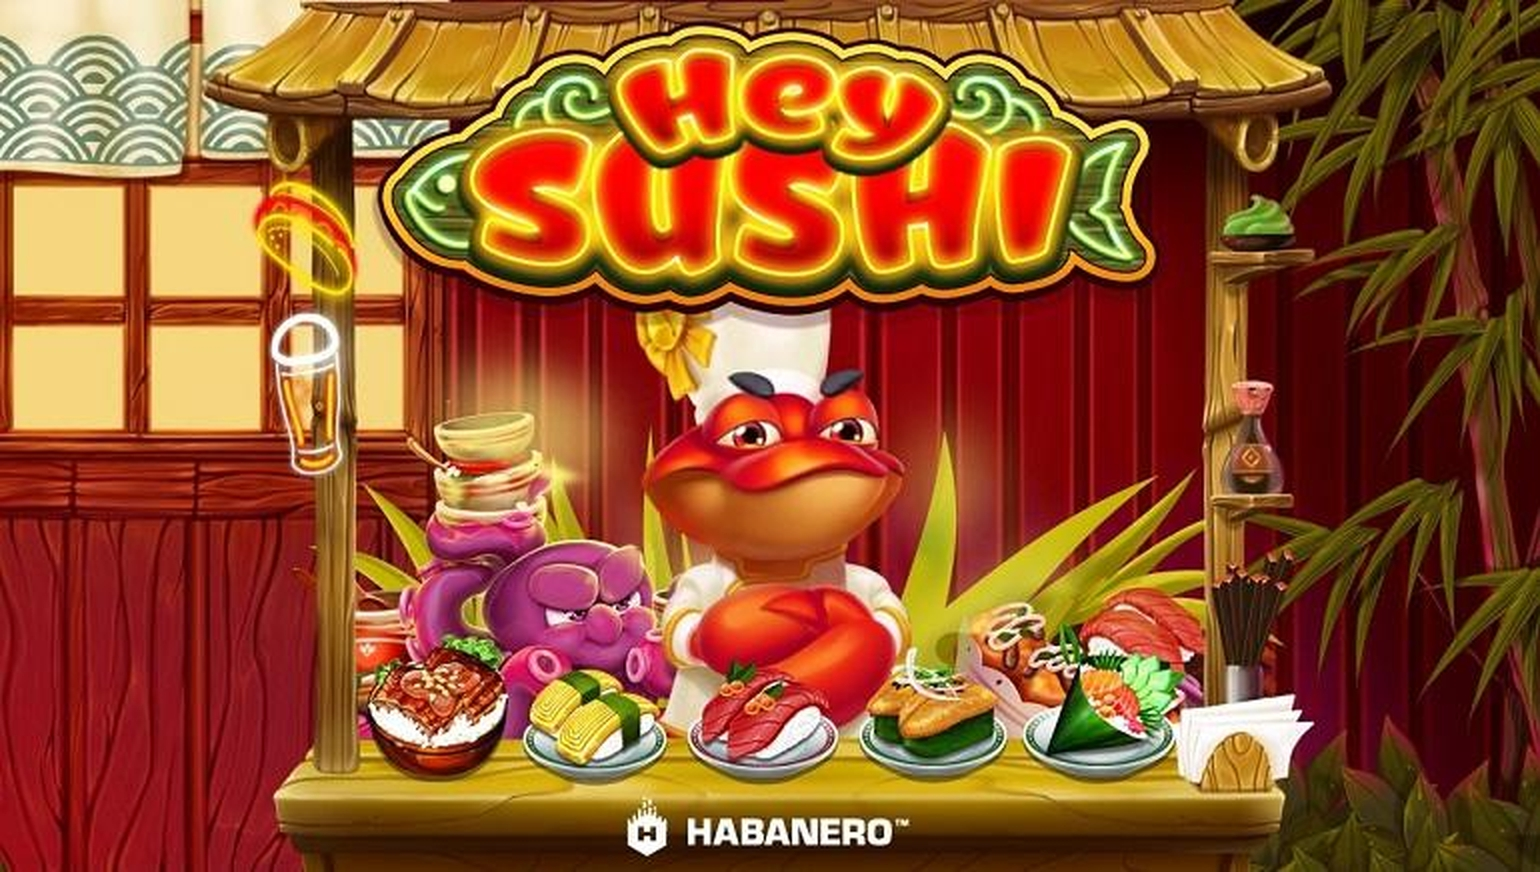 Hey Sushi Online Slot Demo Game by Habanero